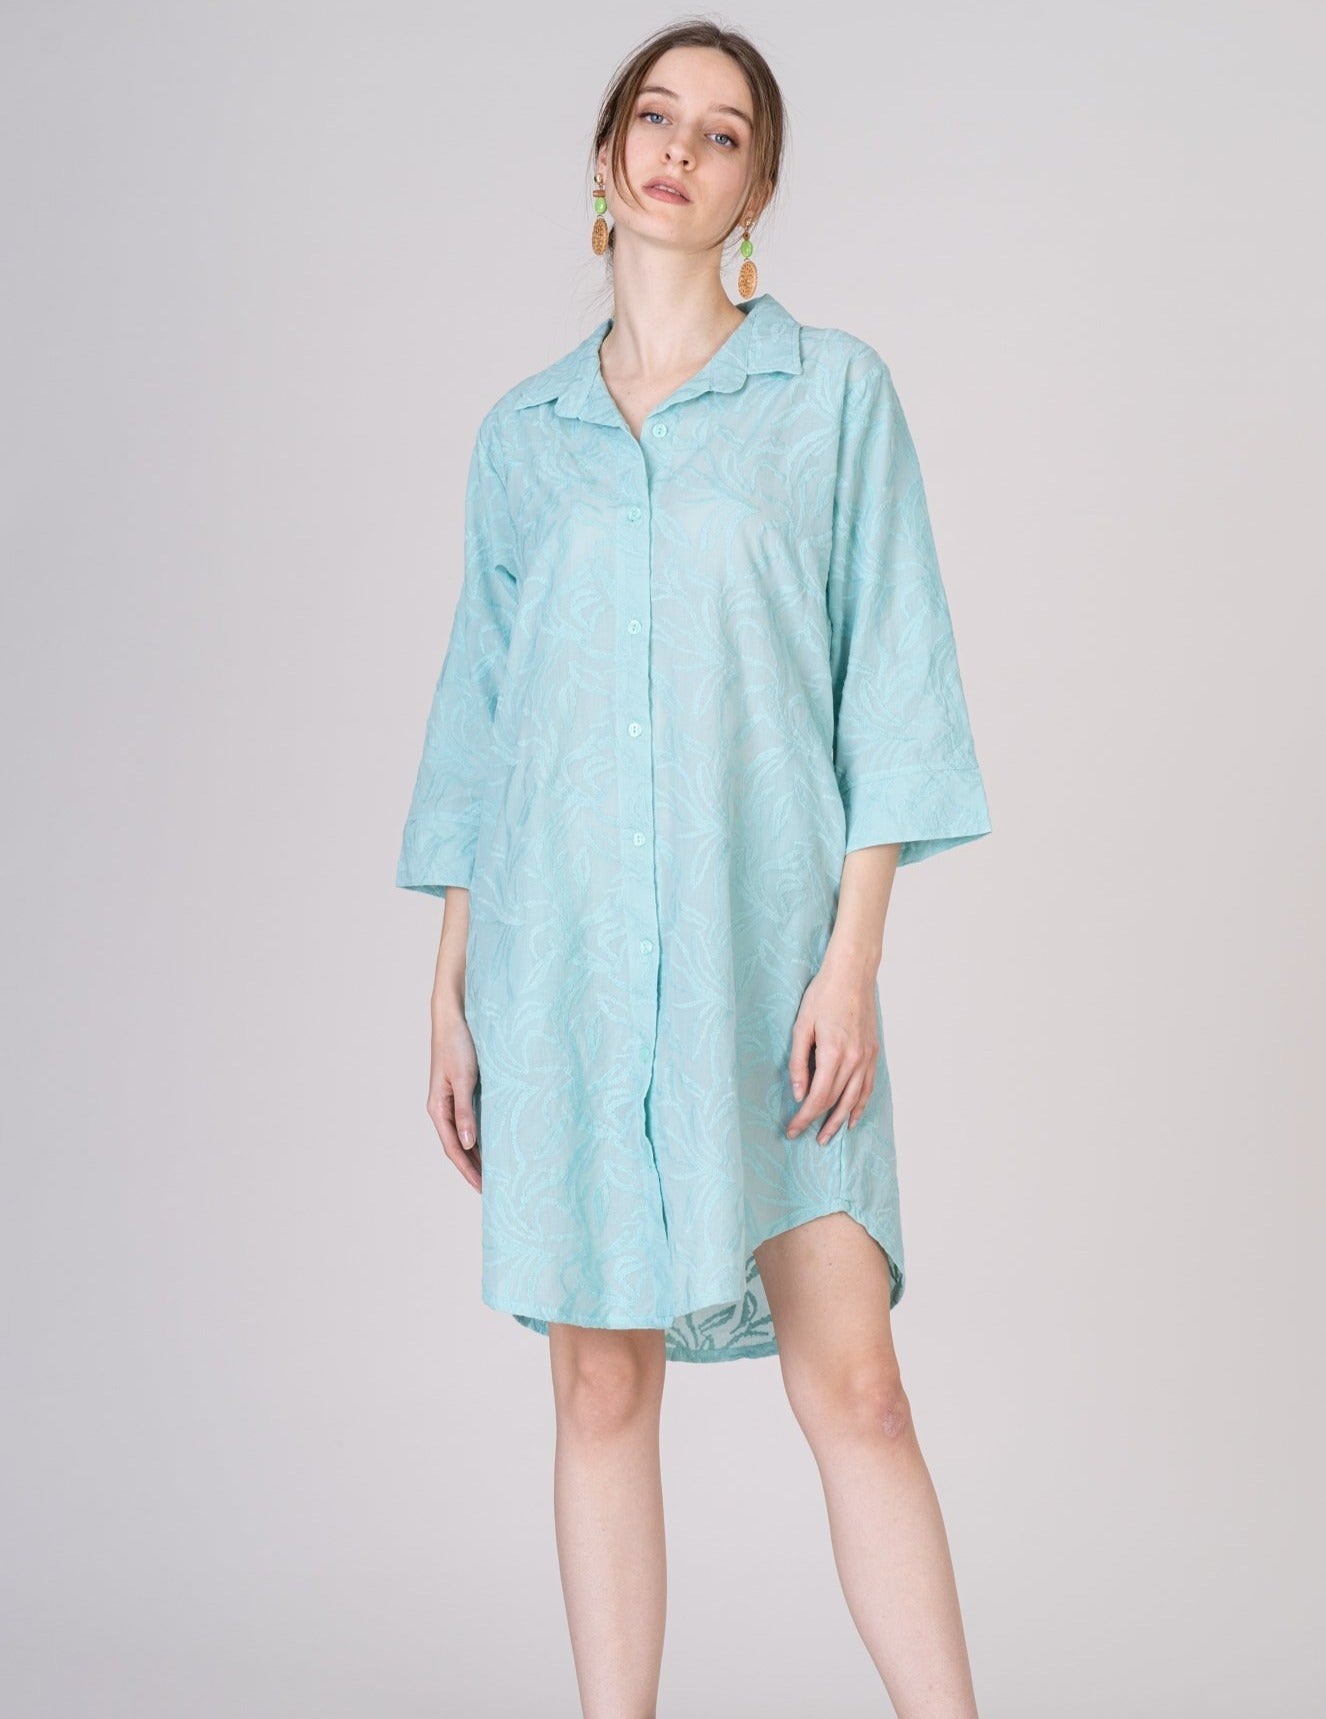 Mint Green Short Cotton Shirt Dress 3/4 Sleeves